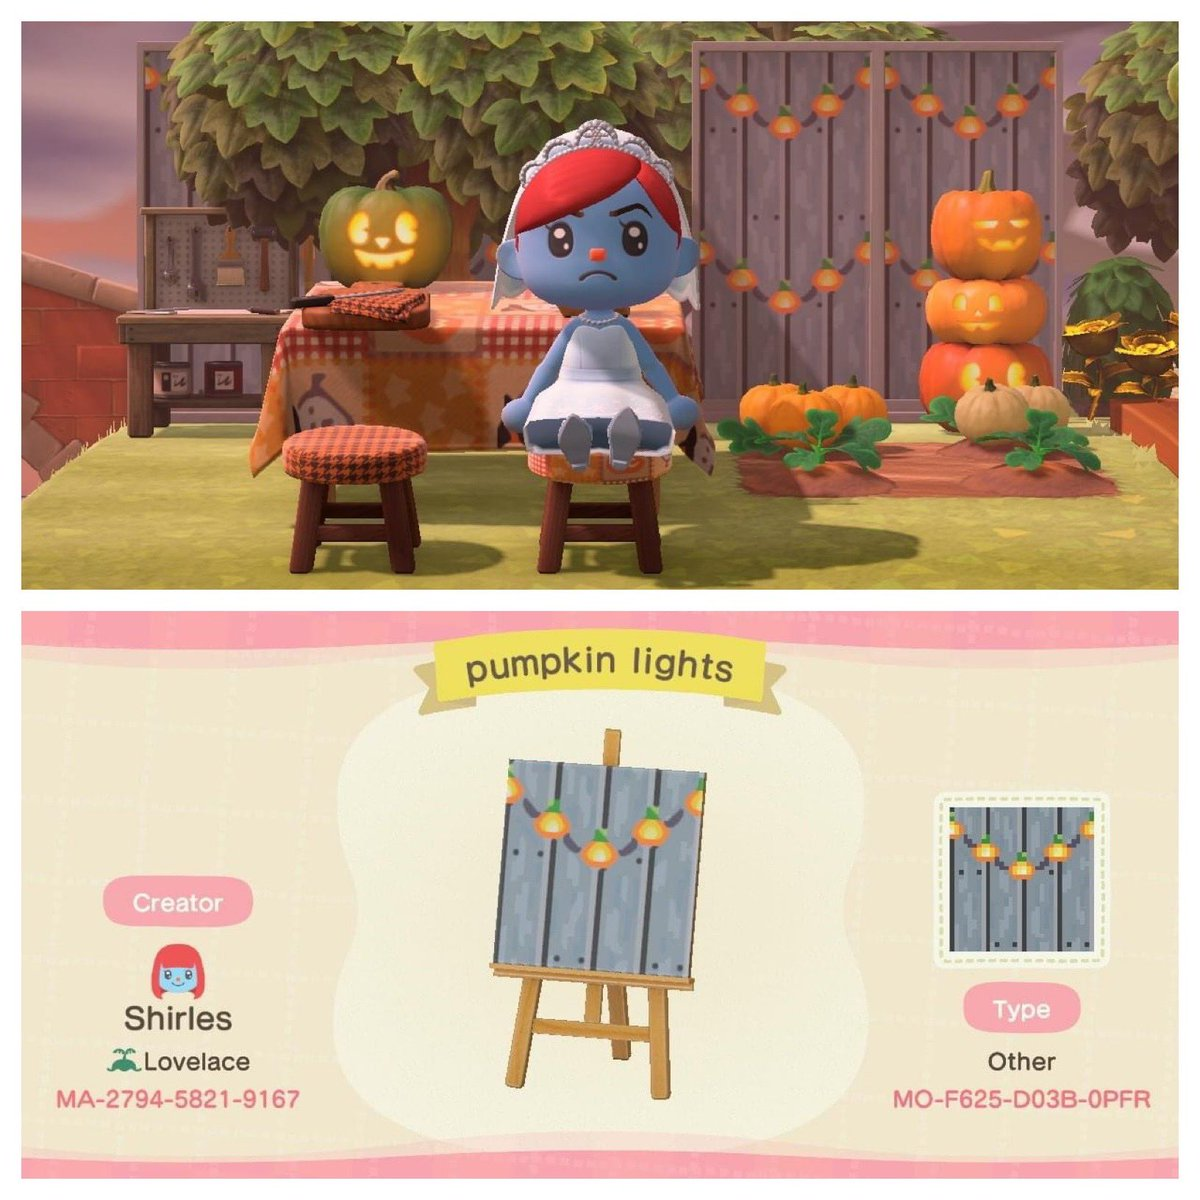 I wanted a seasonal version of these lovely fairy lights by Hailey from Lansdale. Here is my pumpkin version and the original OP version.  #どうぶつの森 #マイデザイン #あつまれどうぶつの森 #acnh #ACNHDesign #acnhhalloween